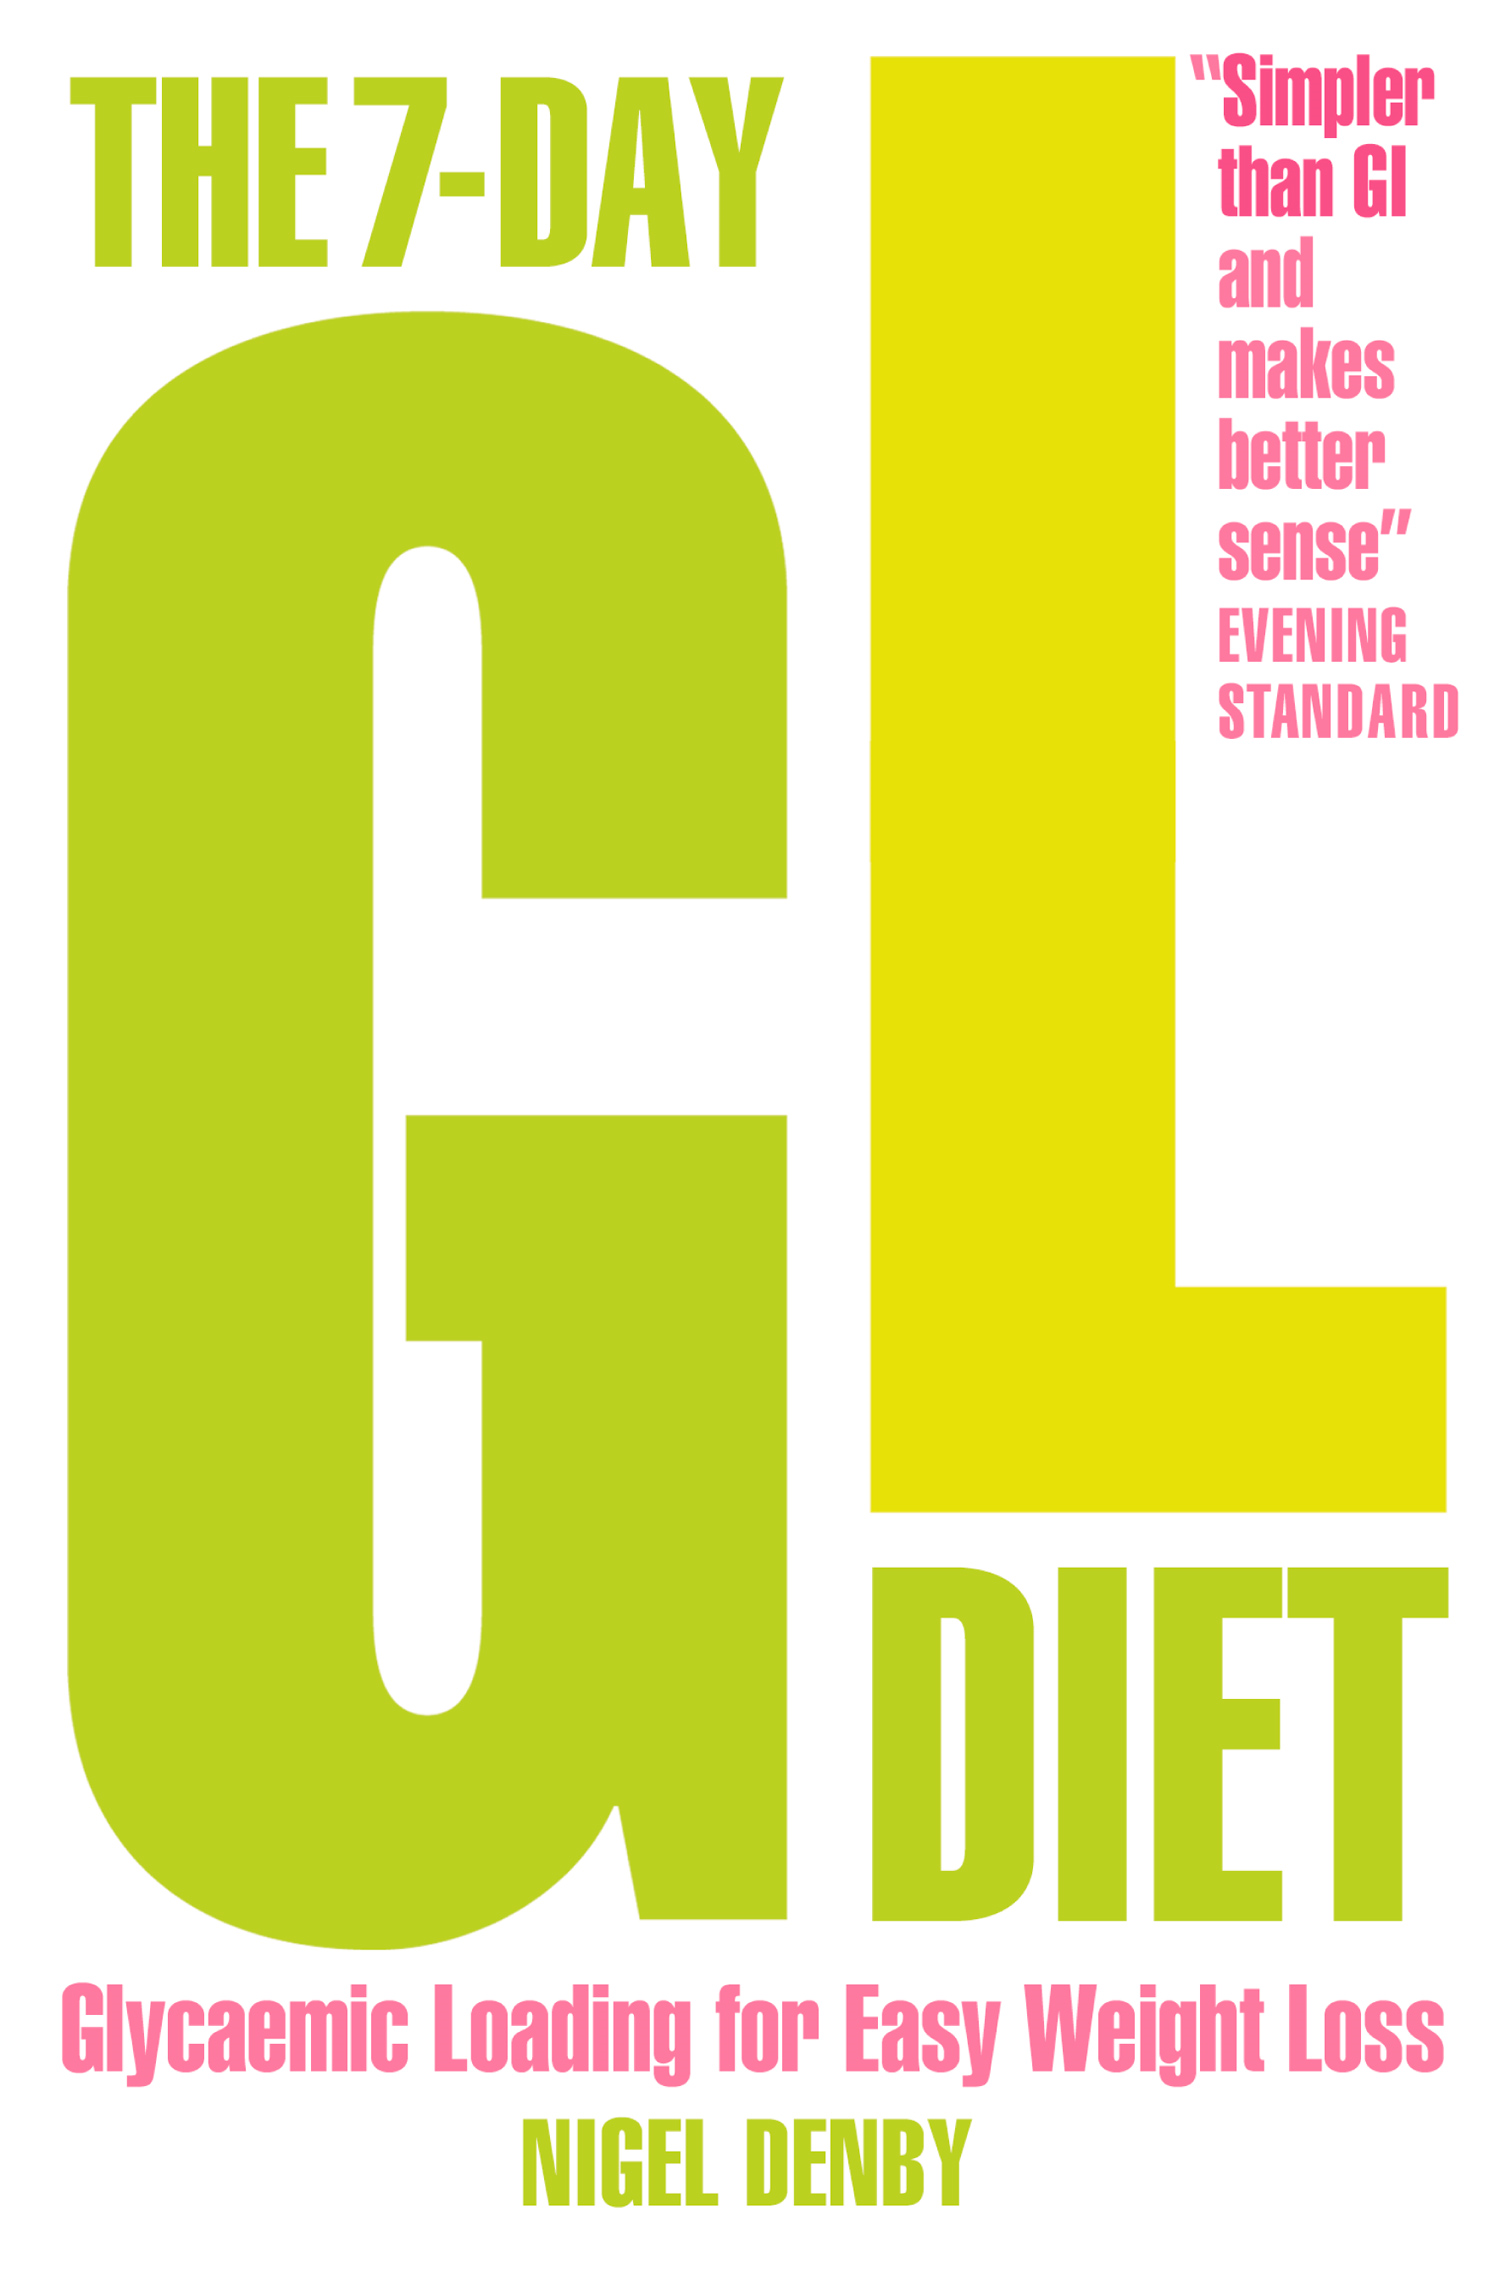 The 7-Day GL Diet: Glycaemic Loading for Easy Weight Loss